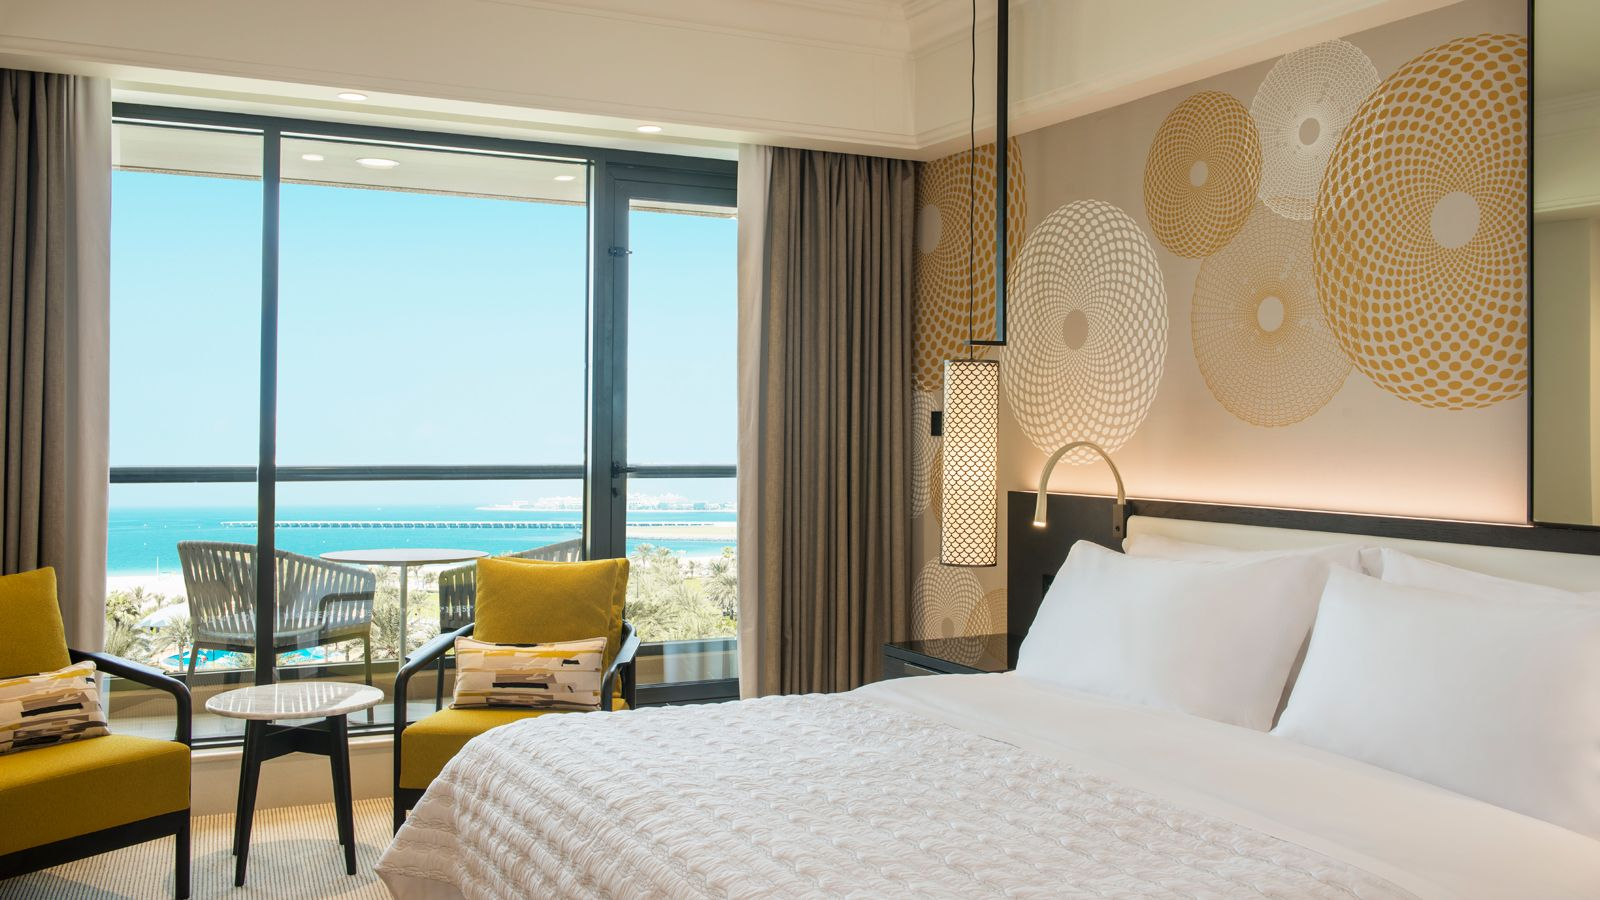 5 star guest rooms le royal meridien beach resort dubai for Design hotel le cinema